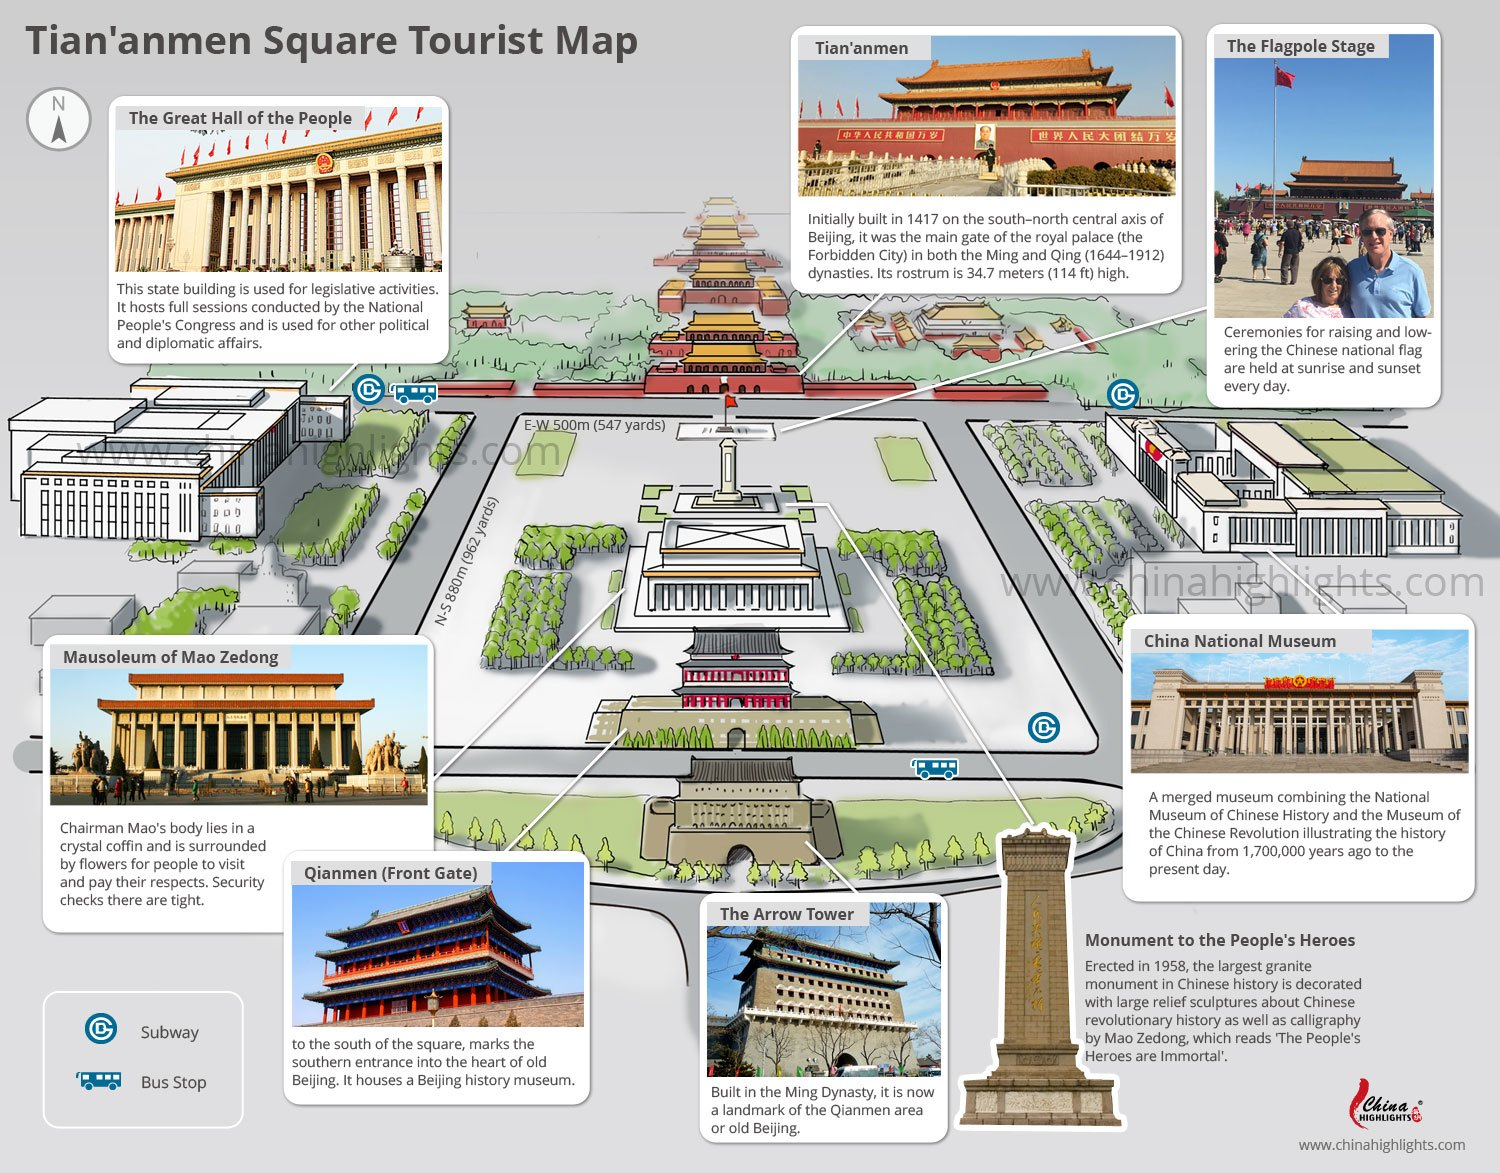 Tiananmen Square layout and Tourist Map